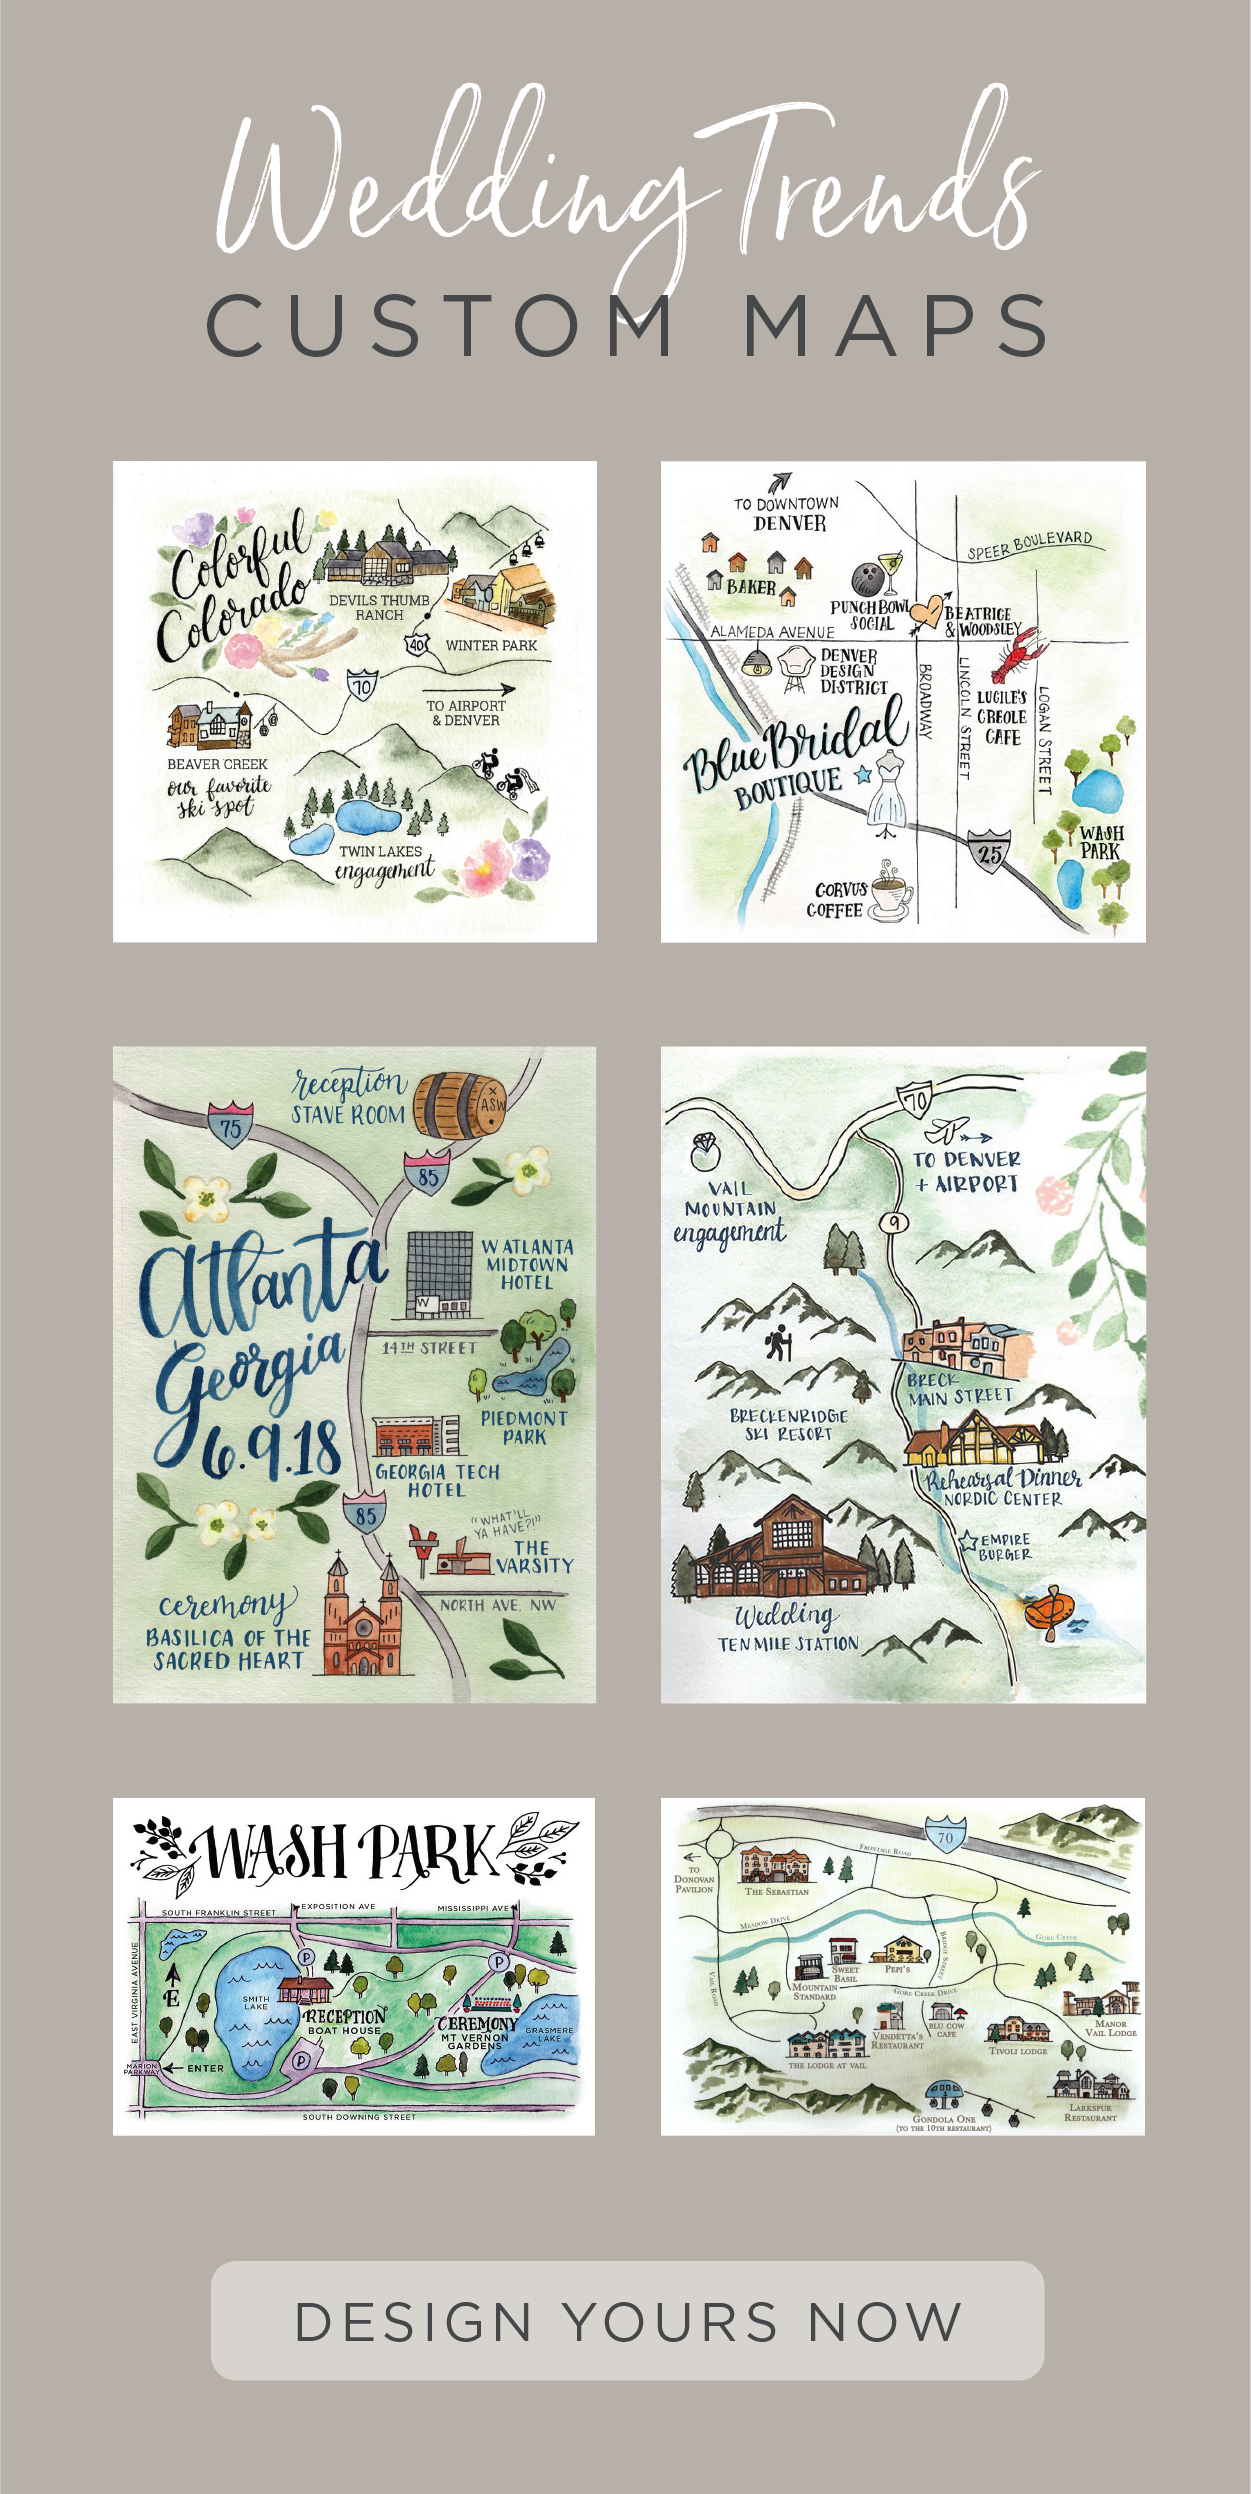 Add A Hand Painted Area Map To Your Wedding Invitations Or